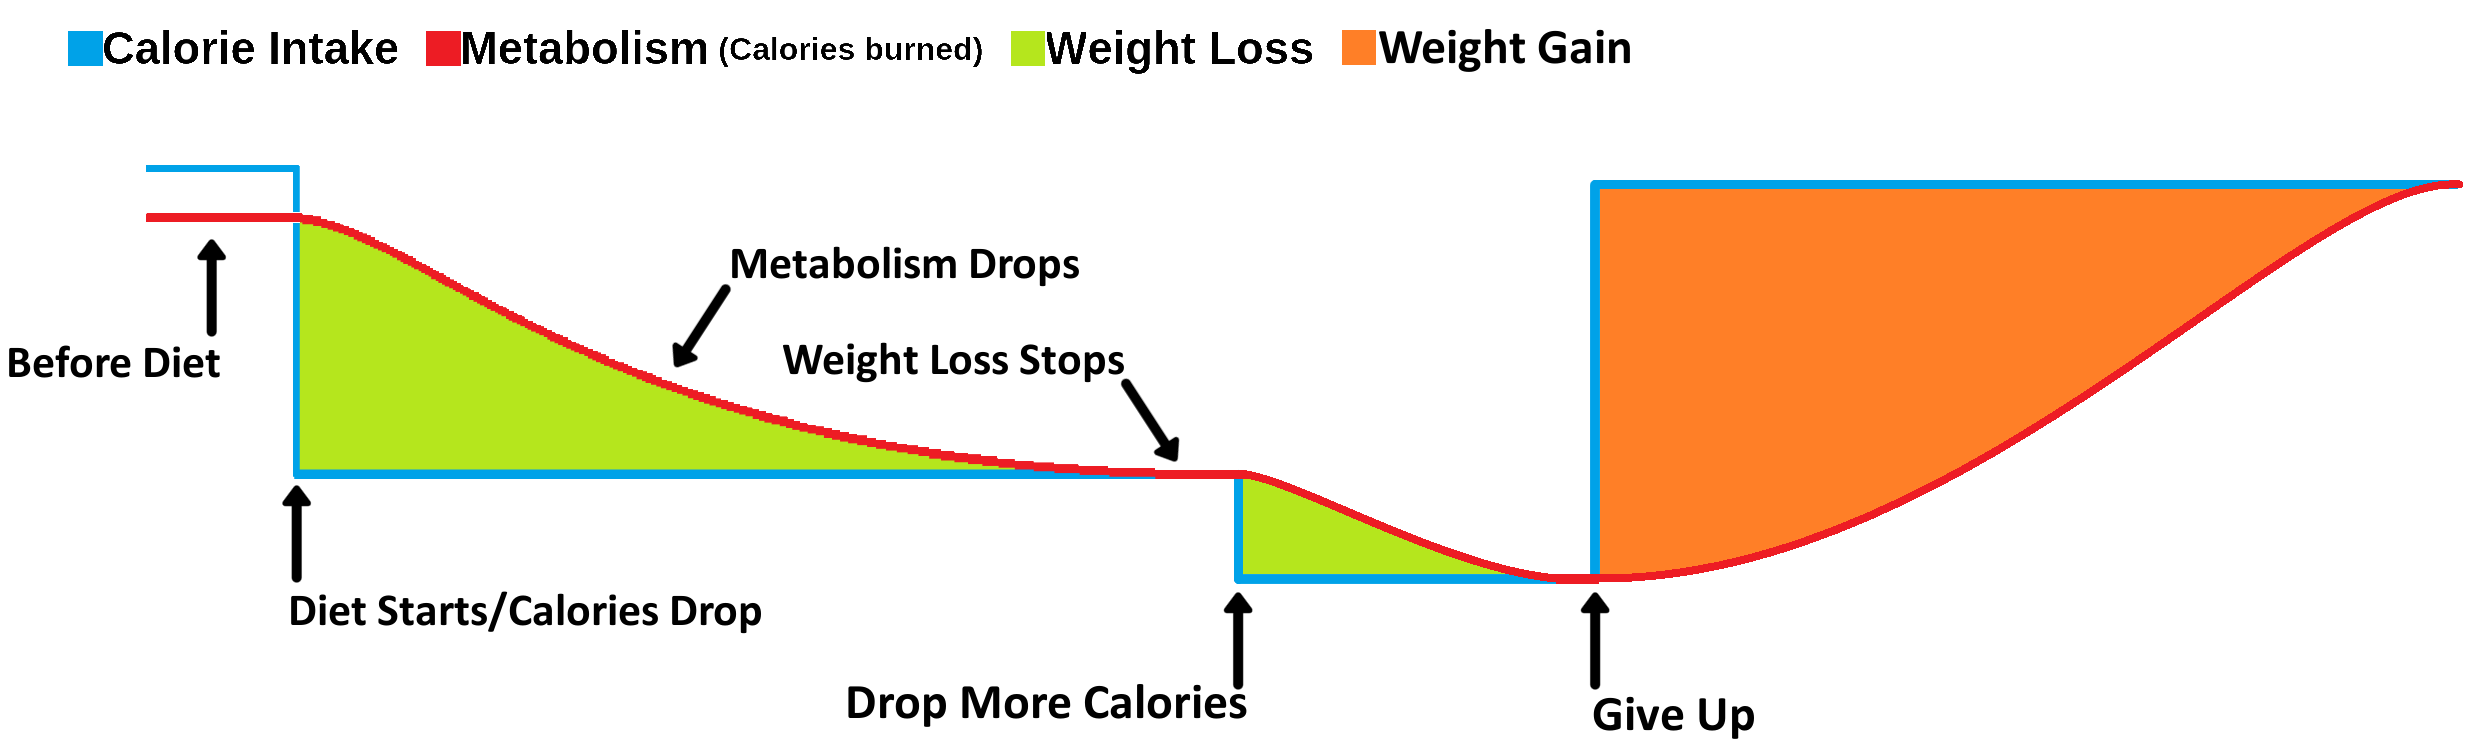 3 decrease Calories then give up - labeled.png